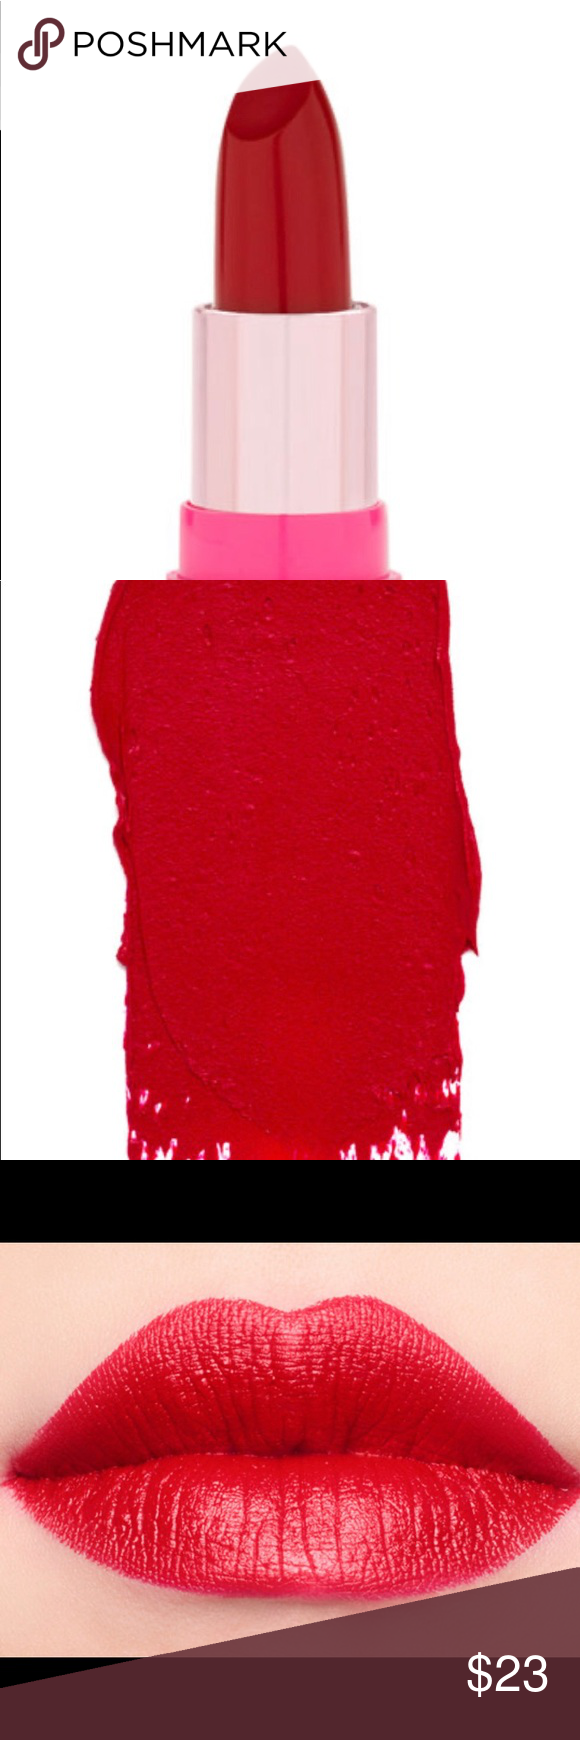 Jeffree Star Cosmetics Holiday Collection 2018 Lip